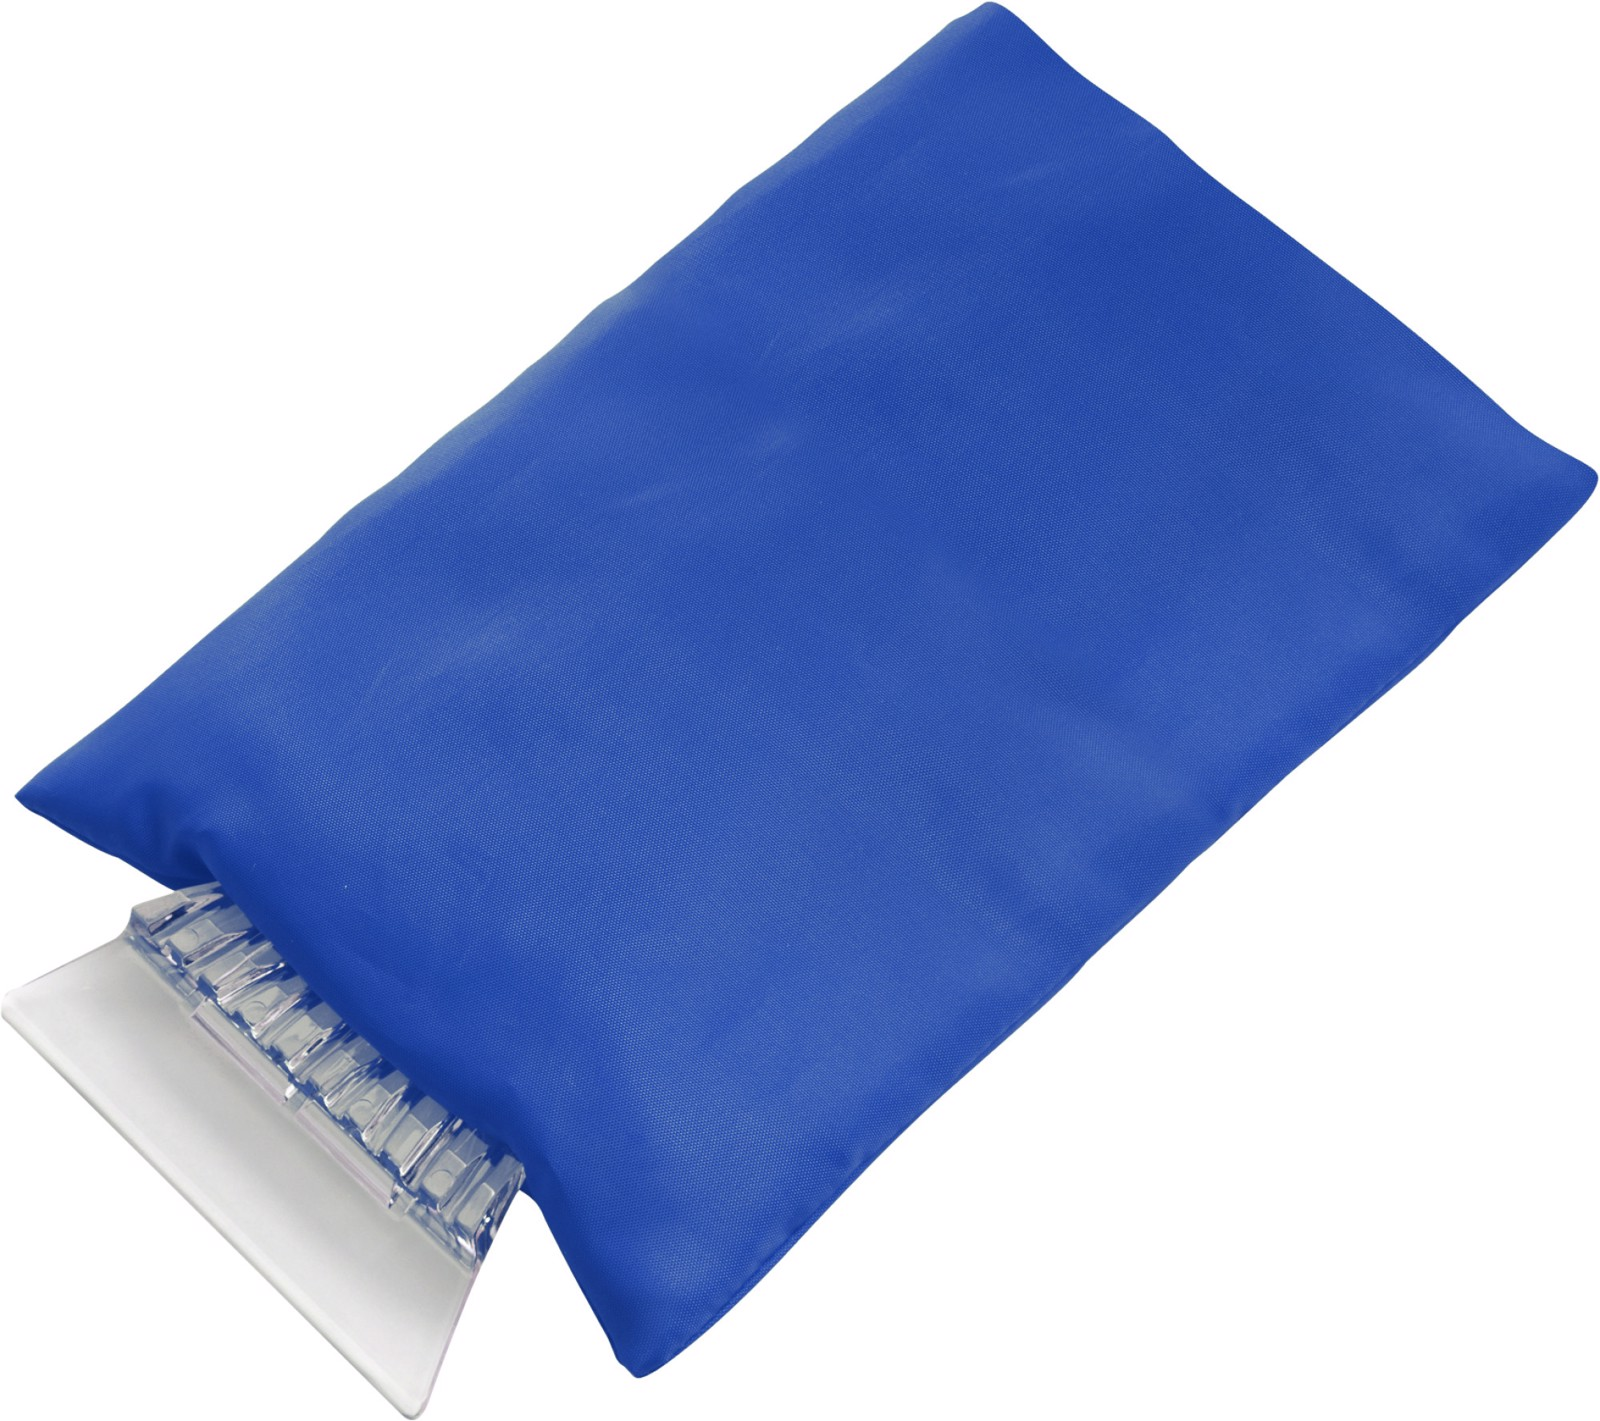 ABS ice scraper and polyester glove - Cobalt Blue